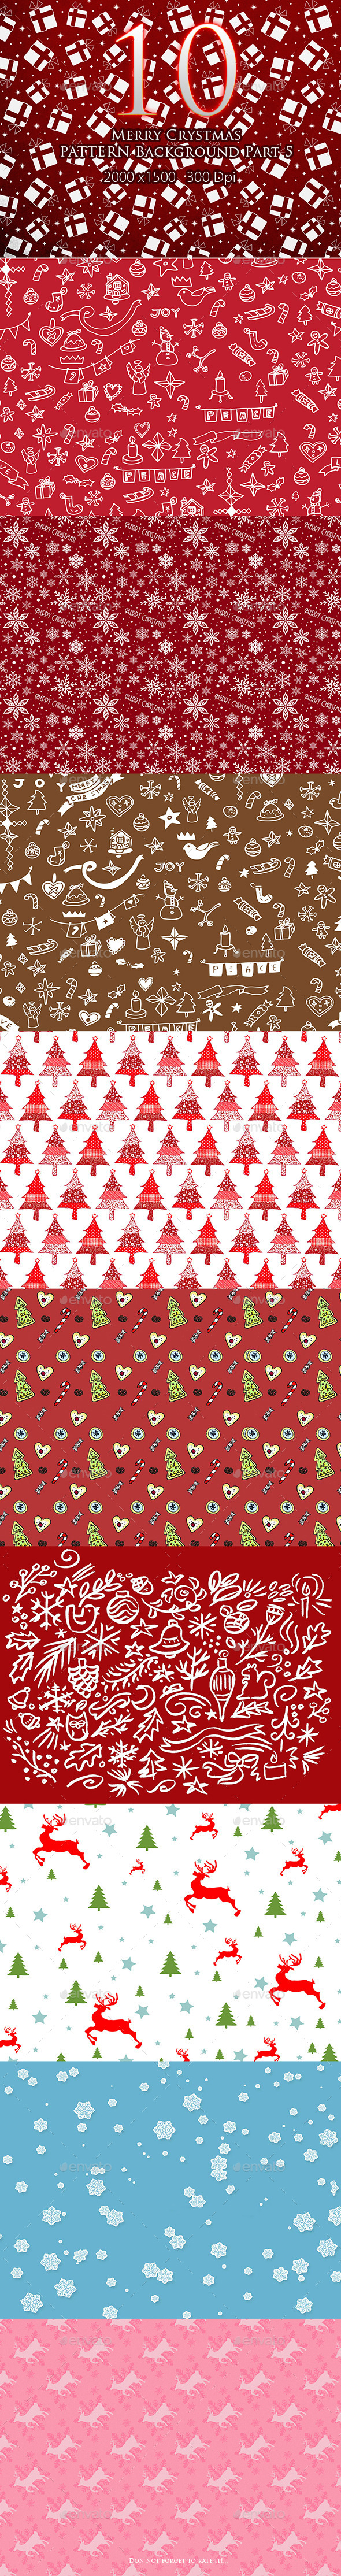 GraphicRiver 10 Merry Crystmas Pattern Background Part 5 9711560